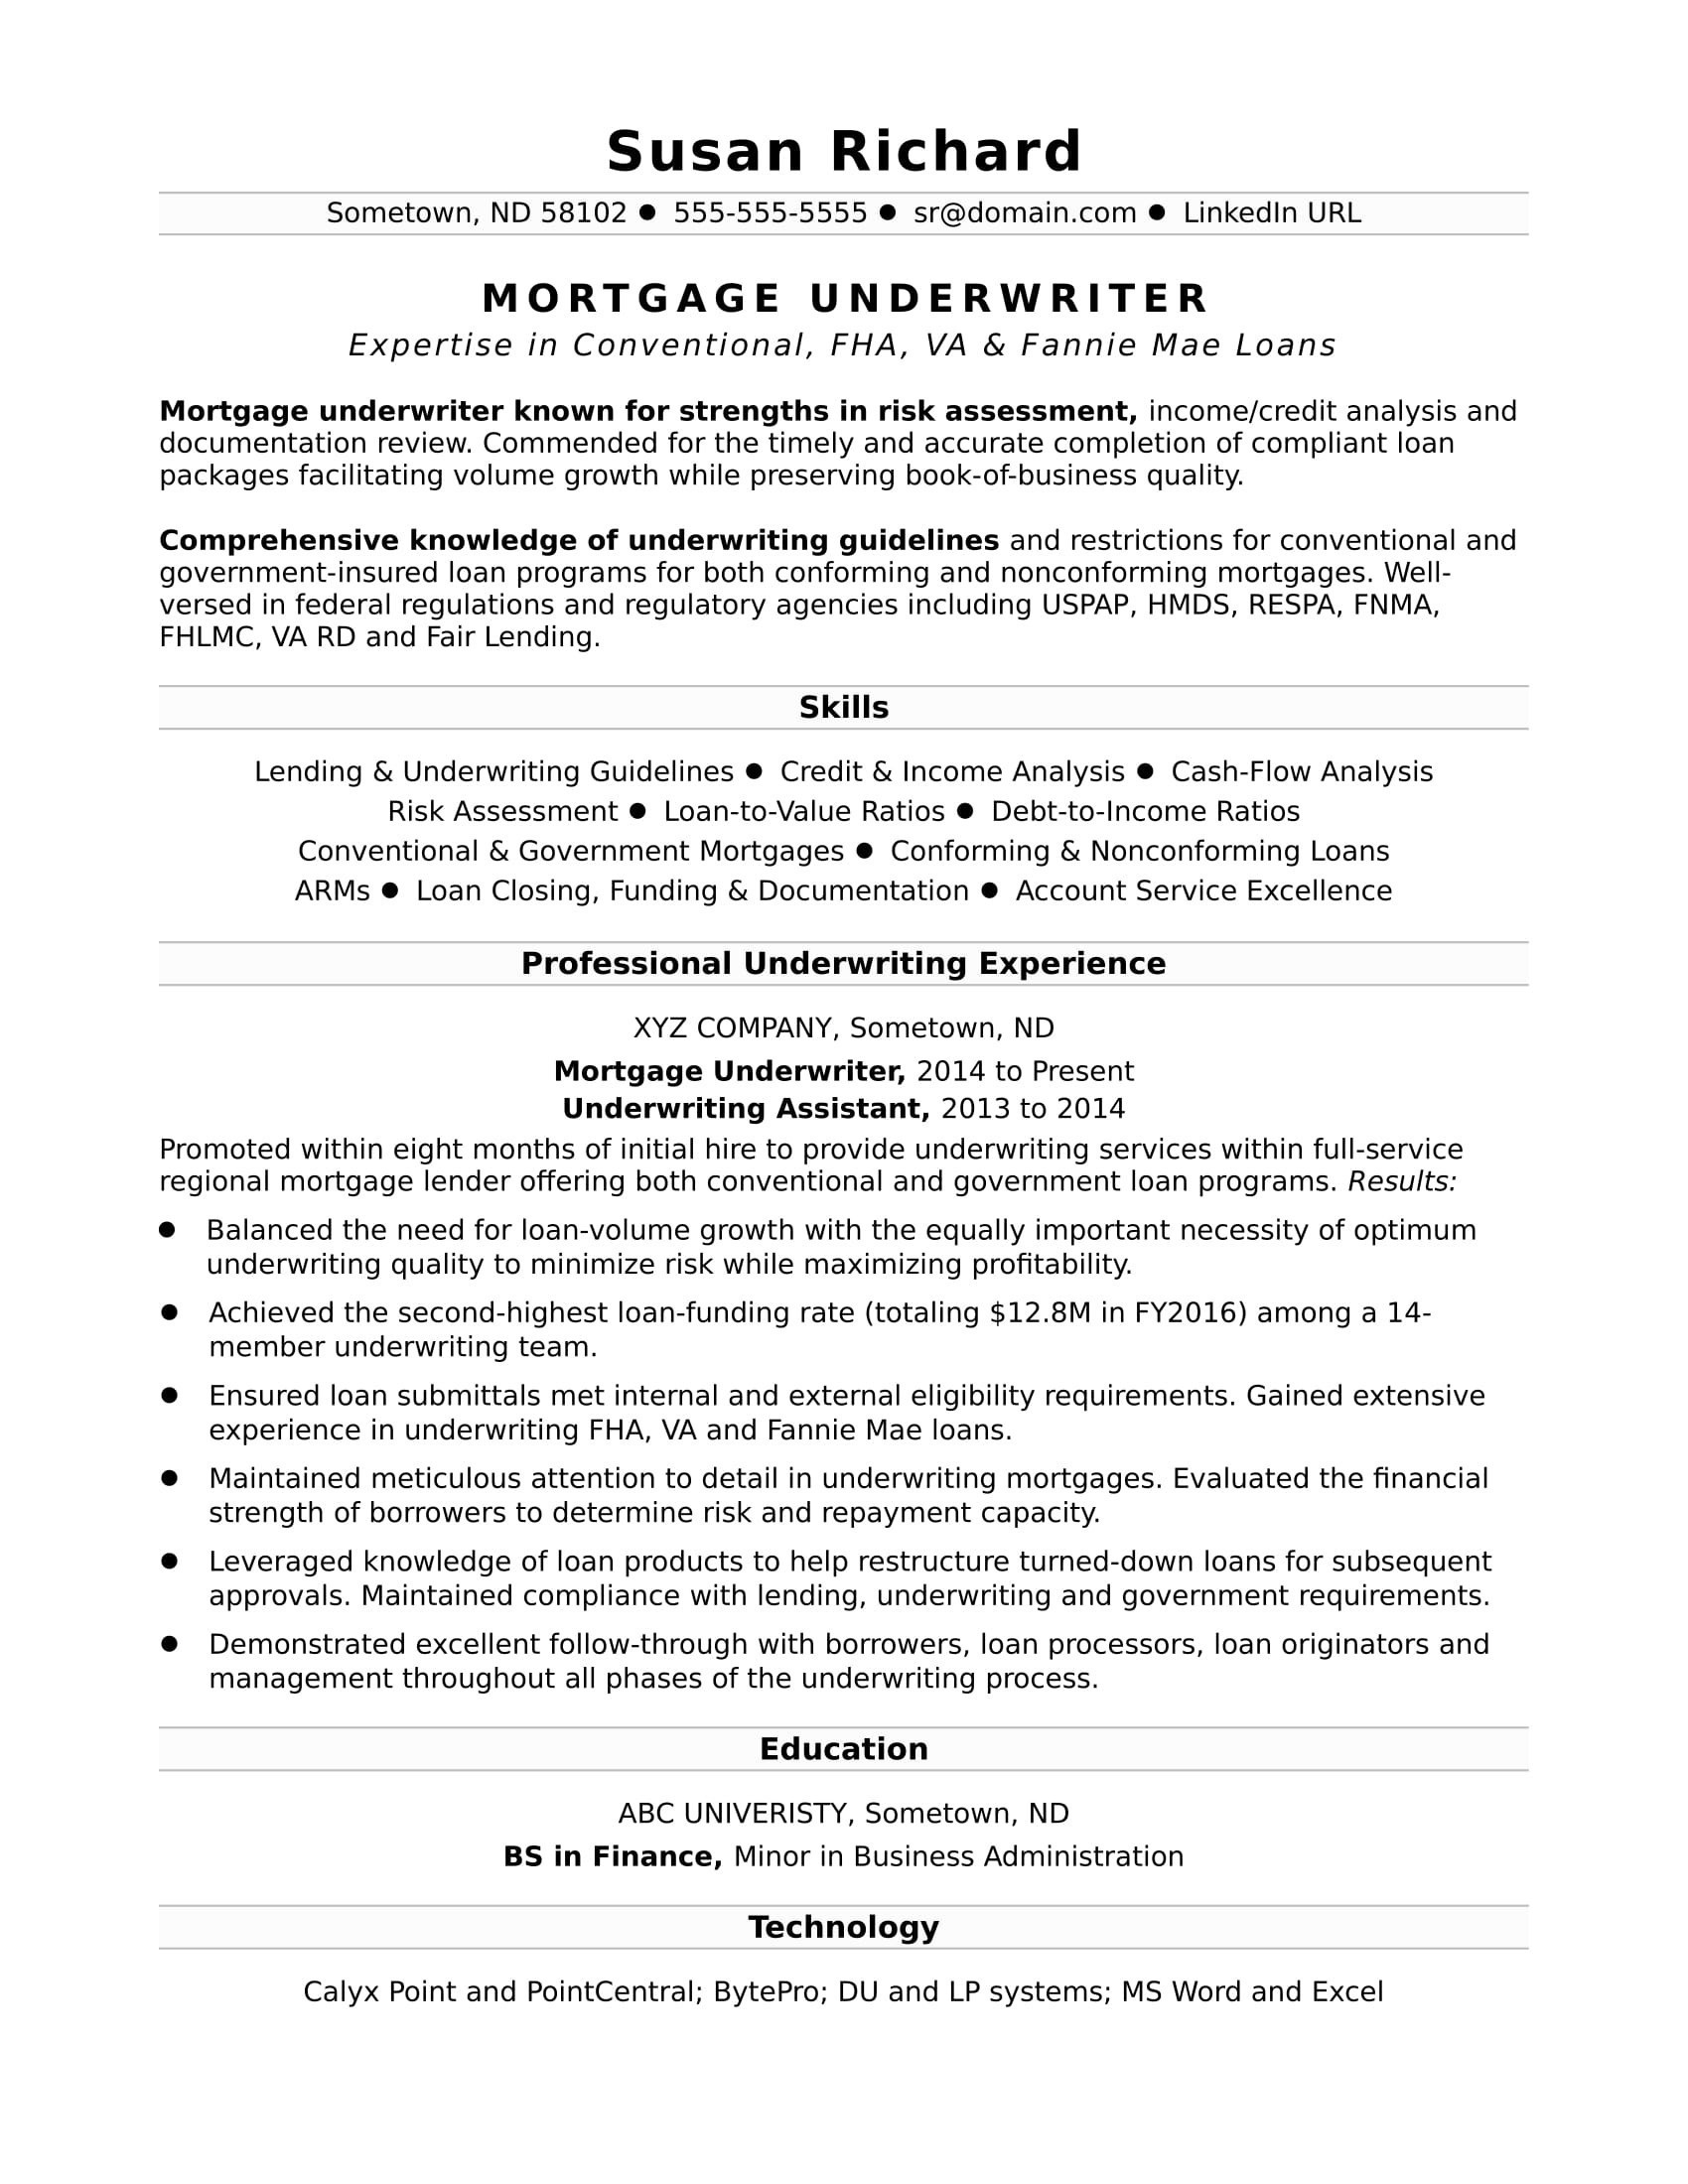 Resume Cover Letter Template Word - Free Resume Search In India Unique New Programmer Resume Lovely